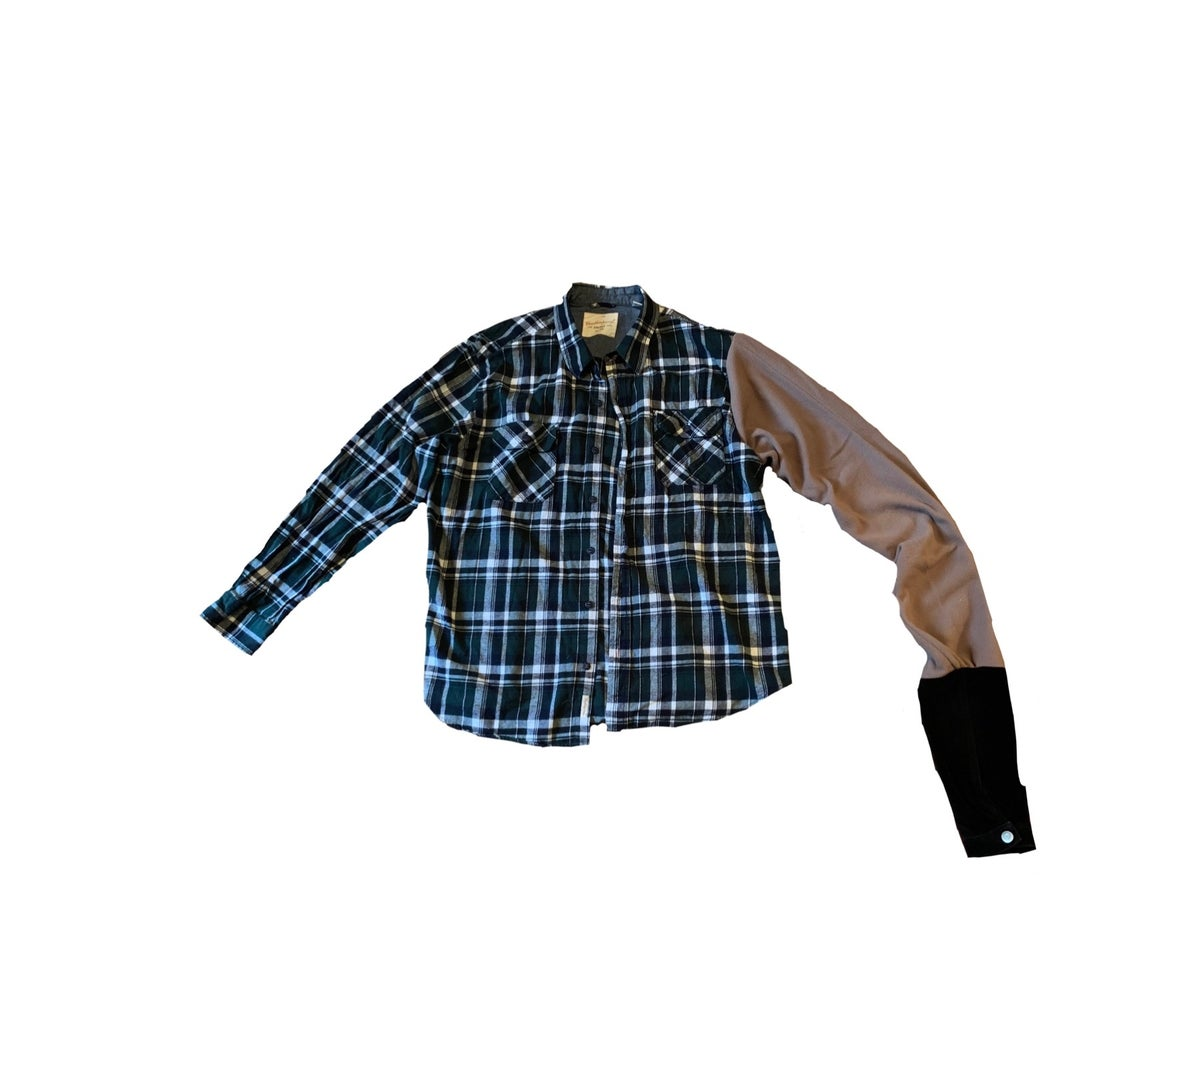 1 of 1 Flannel shirt